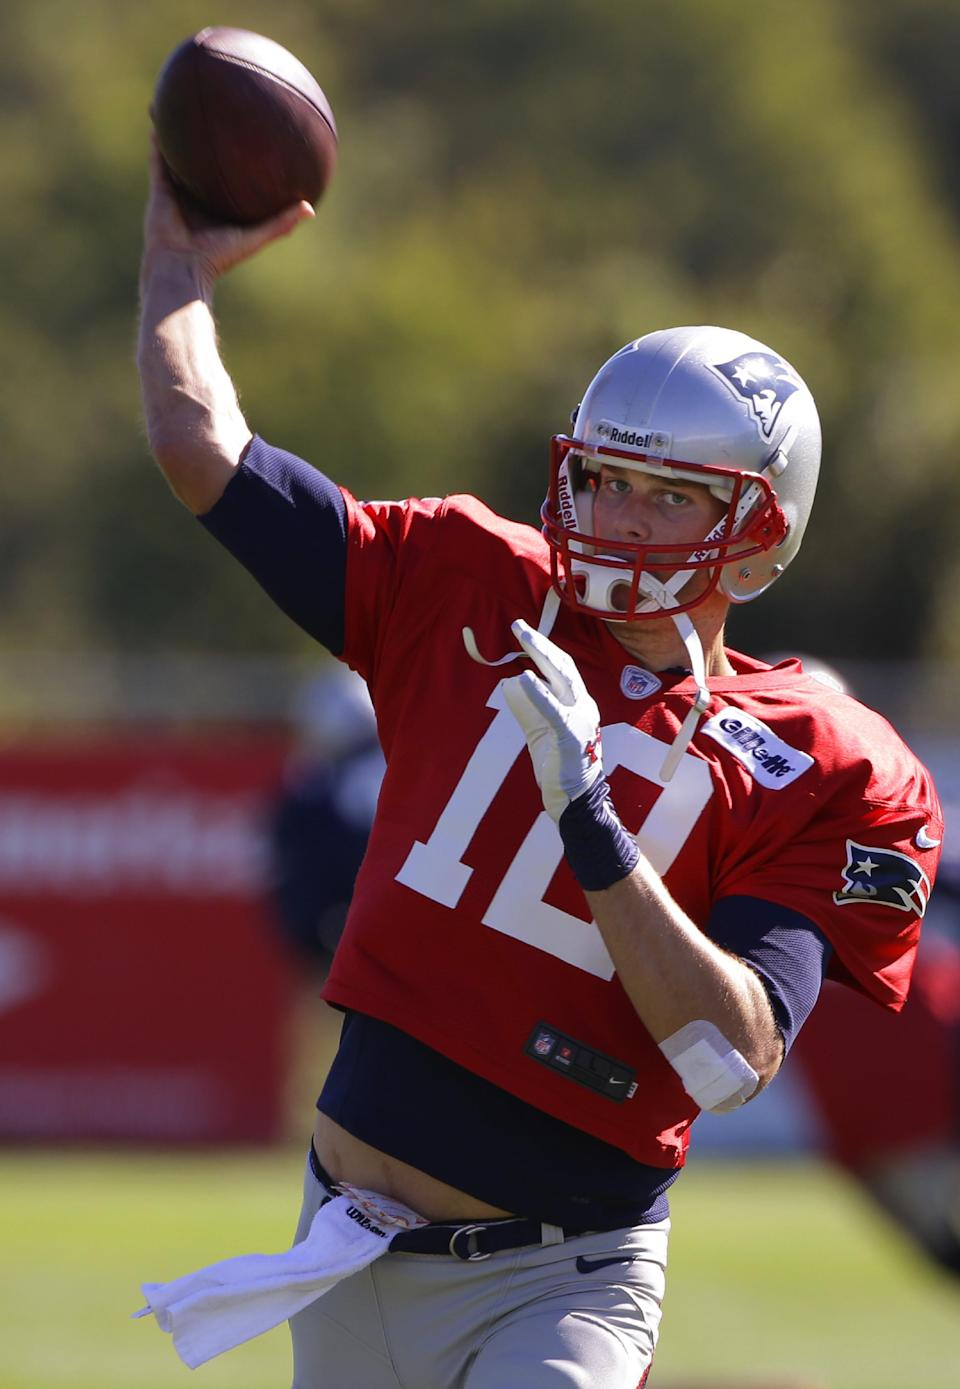 Brady, Patriots prep for familiar foe in Revis